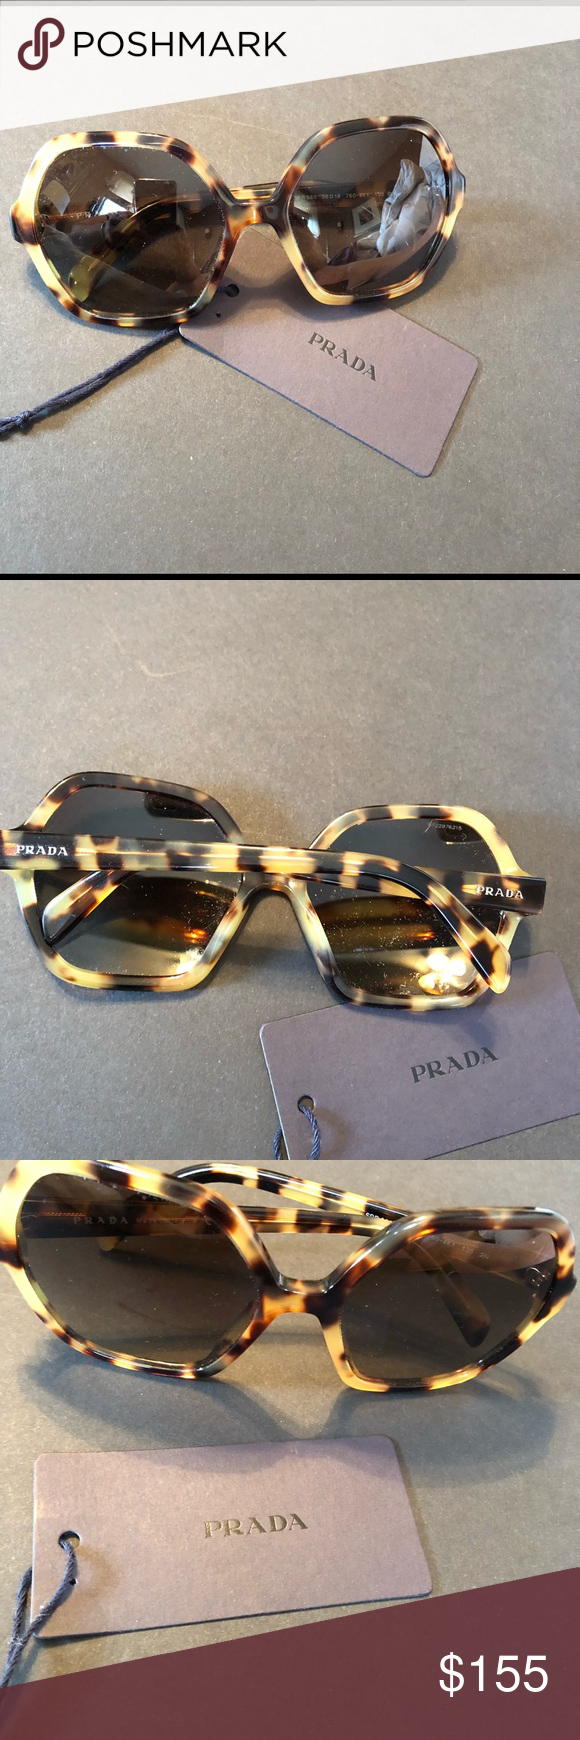 5add2c63f1ee8 PRADA AUTHENTIC SUNGLASSES Tortoise shell frames. Octagon shape ...